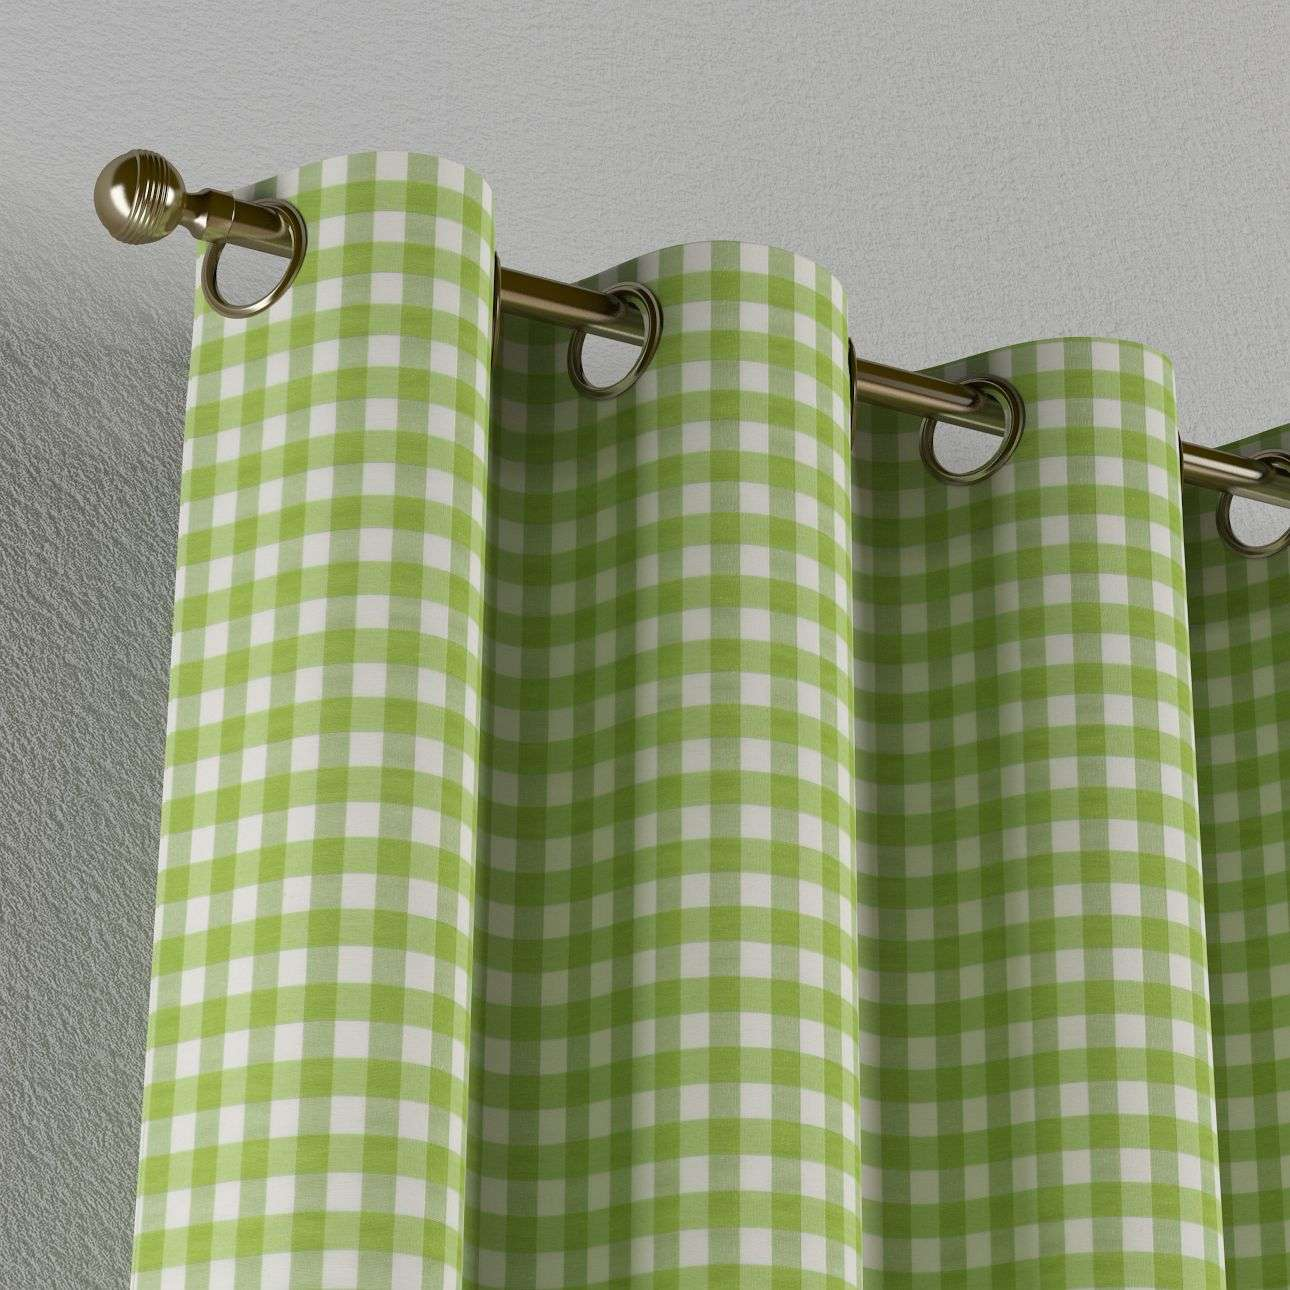 Eyelet curtains 130 x 260 cm (51 x 102 inch) in collection Quadro, fabric: 136-34